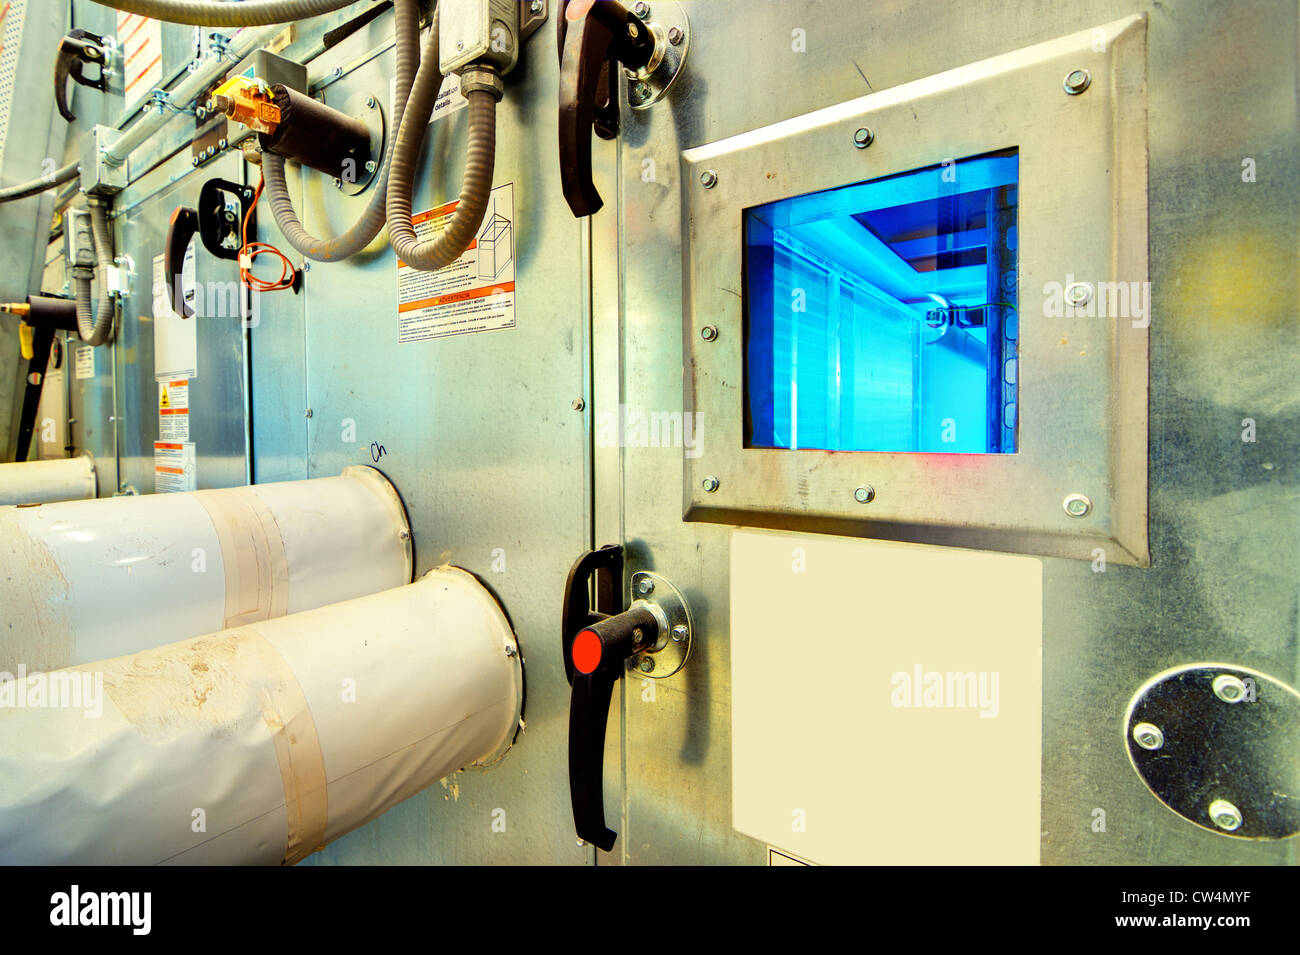 UV light filter in a cooling unit - Stock Image